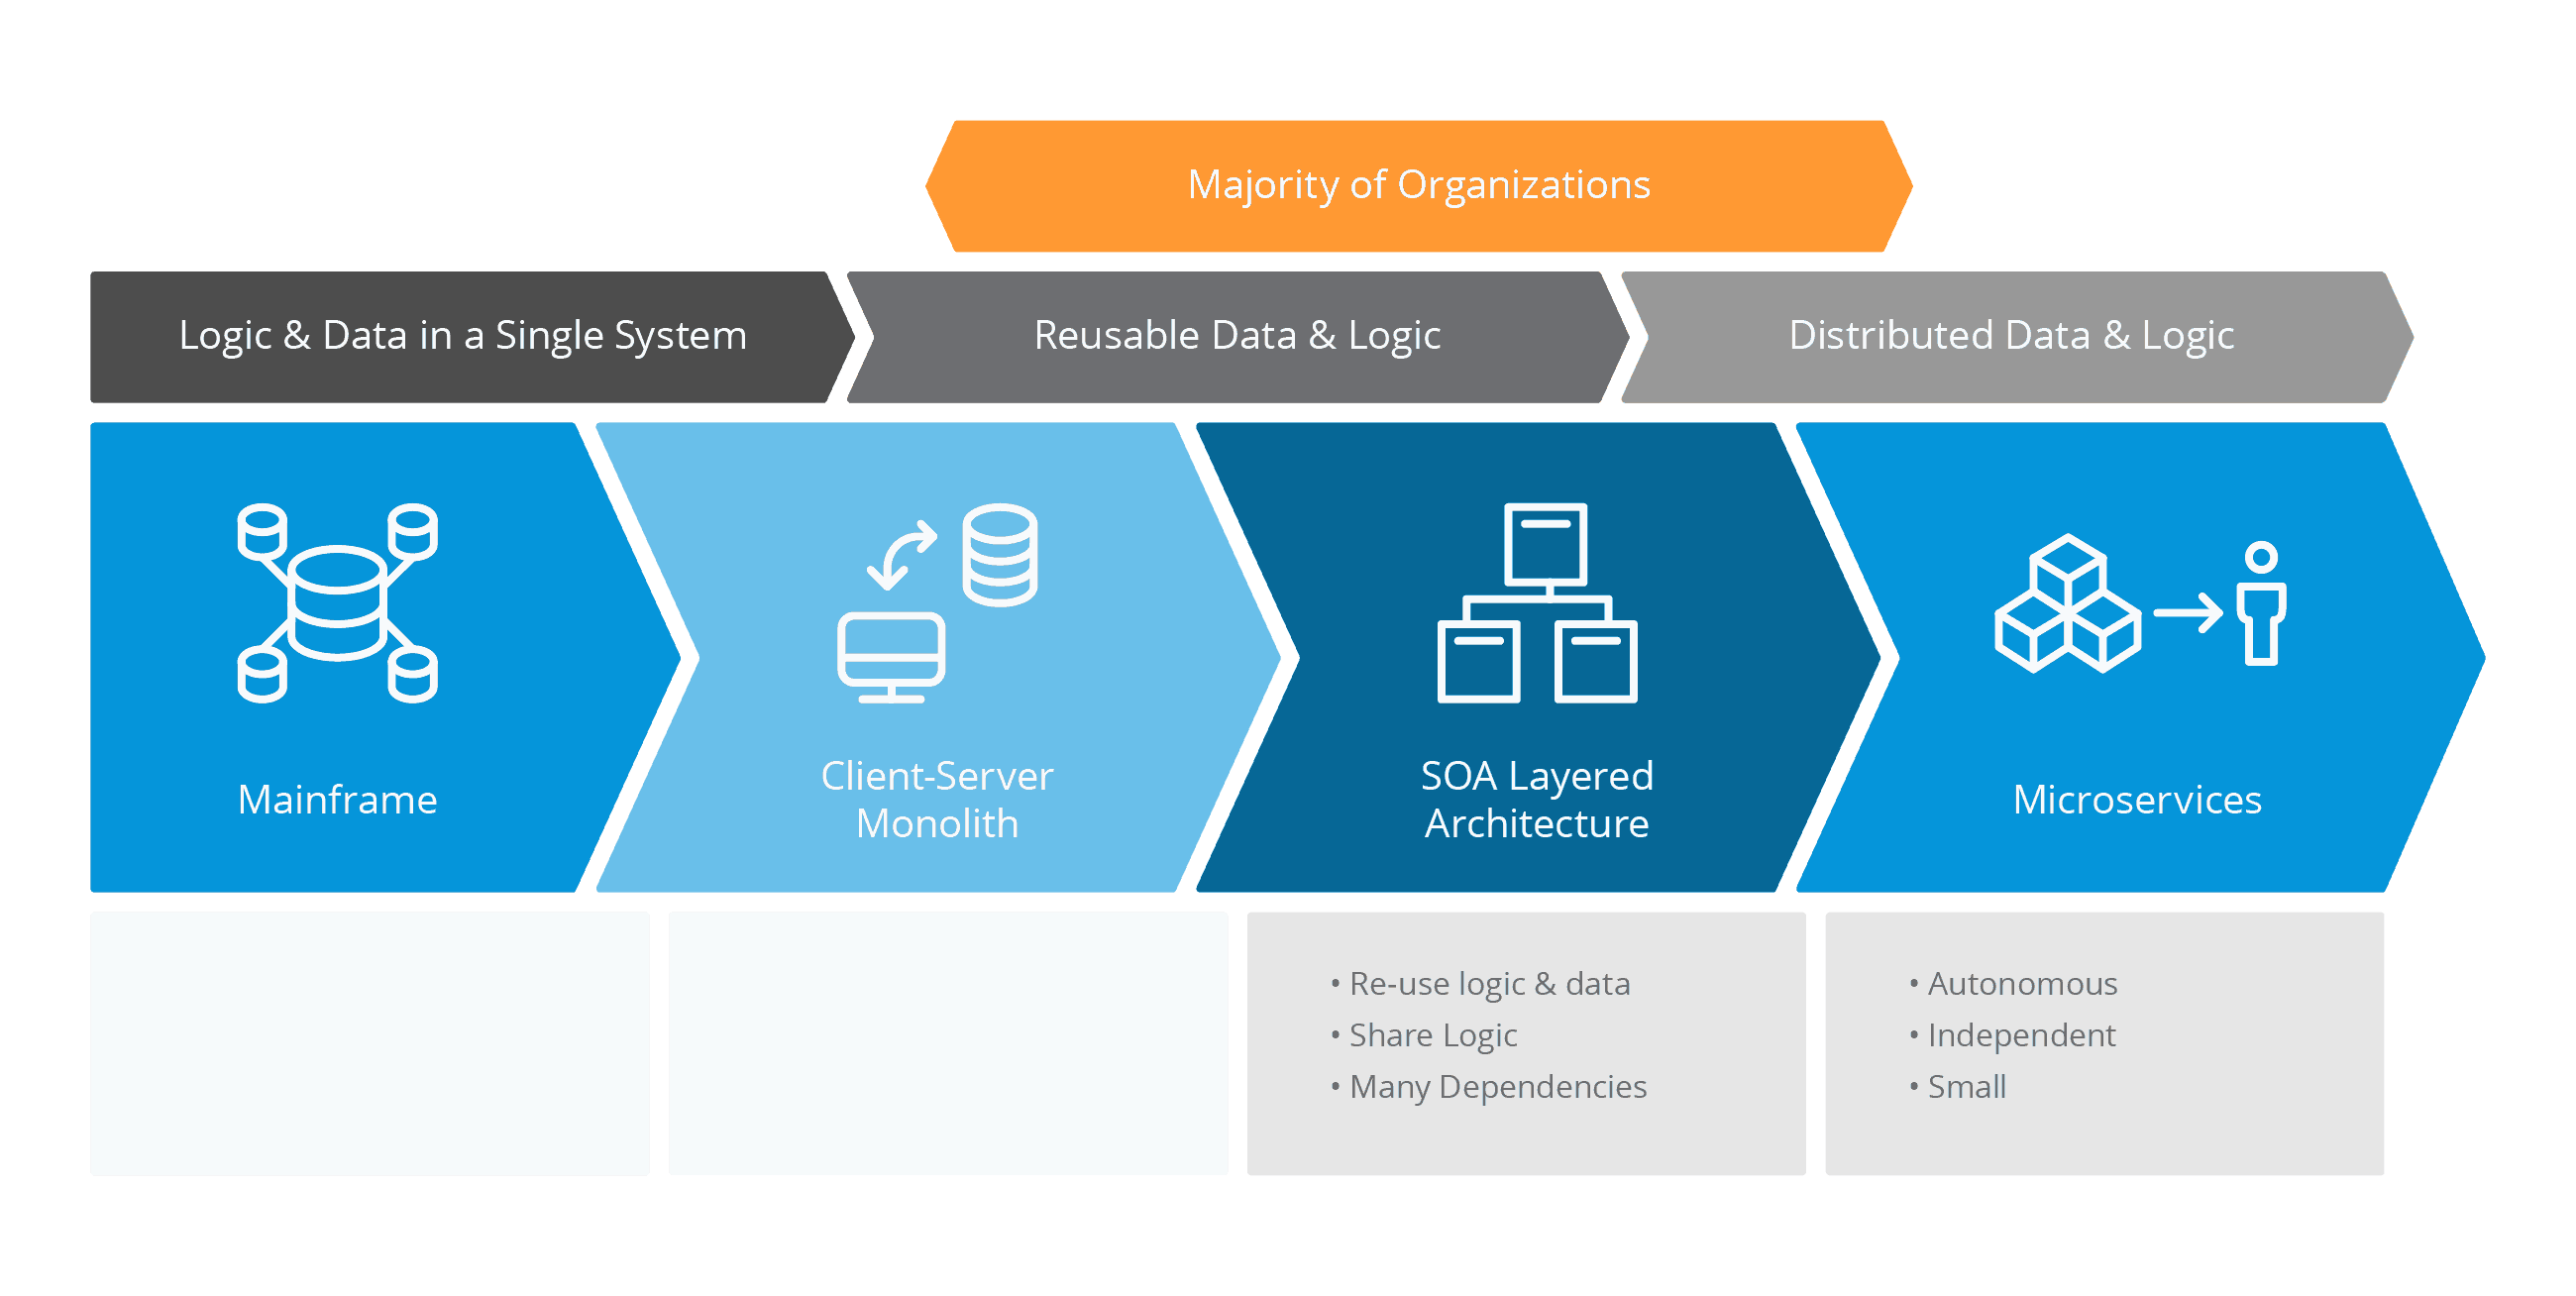 Organization Architecture Chart - Mainframe vs Client Server Monolith vs SOA Layered Architecture vs Microservices